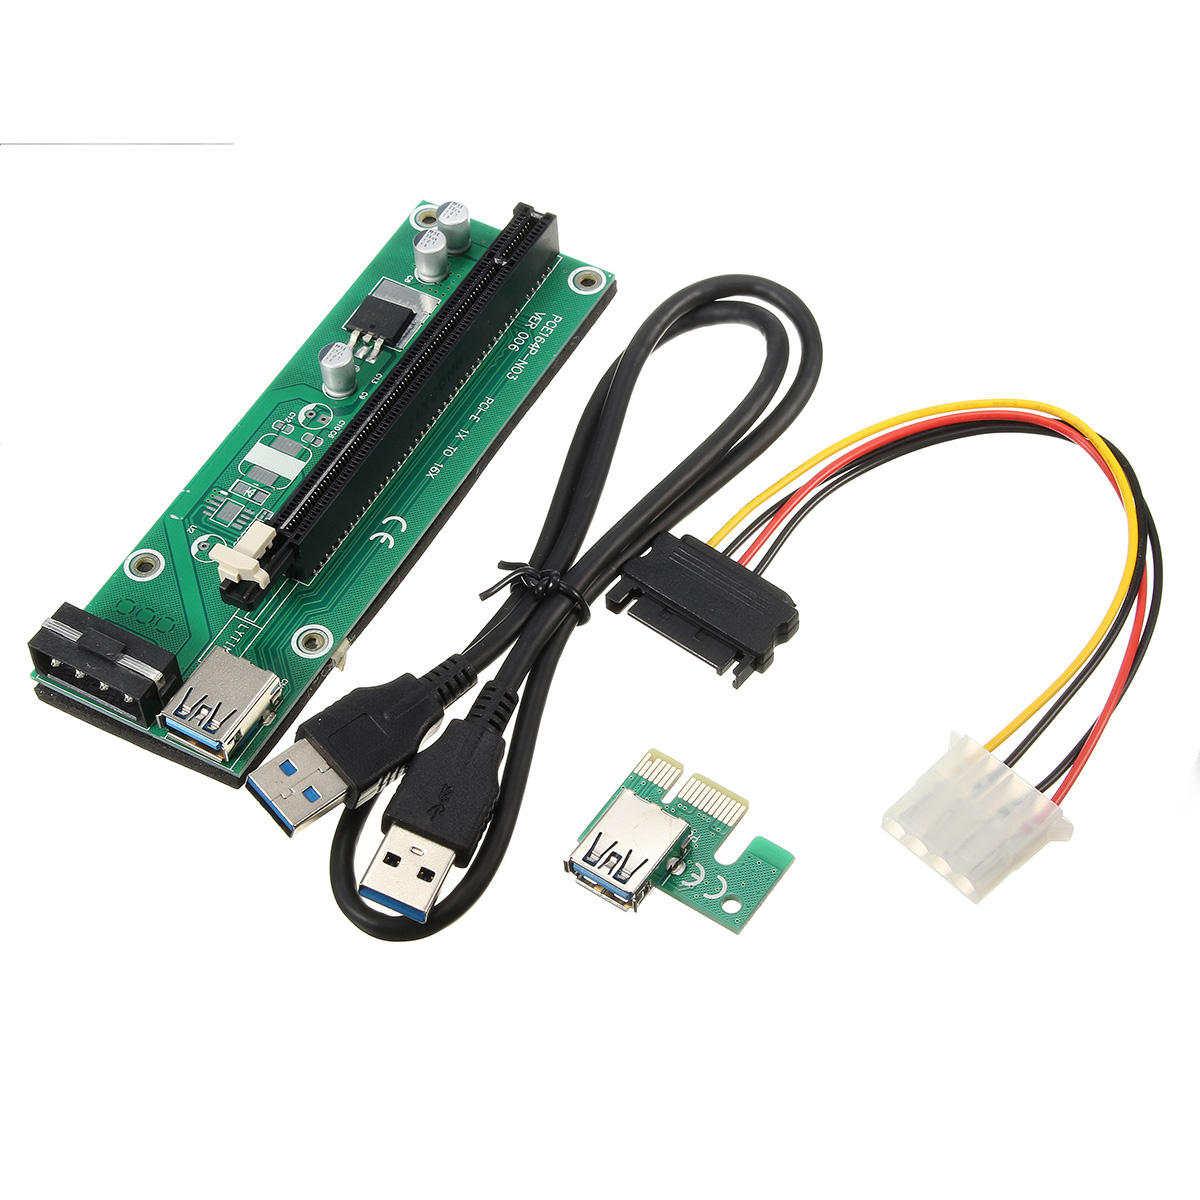 USB 3.0 PCI-E Express 1x to16x Extension Cable Extender Riser Card Adapter SATA Cable